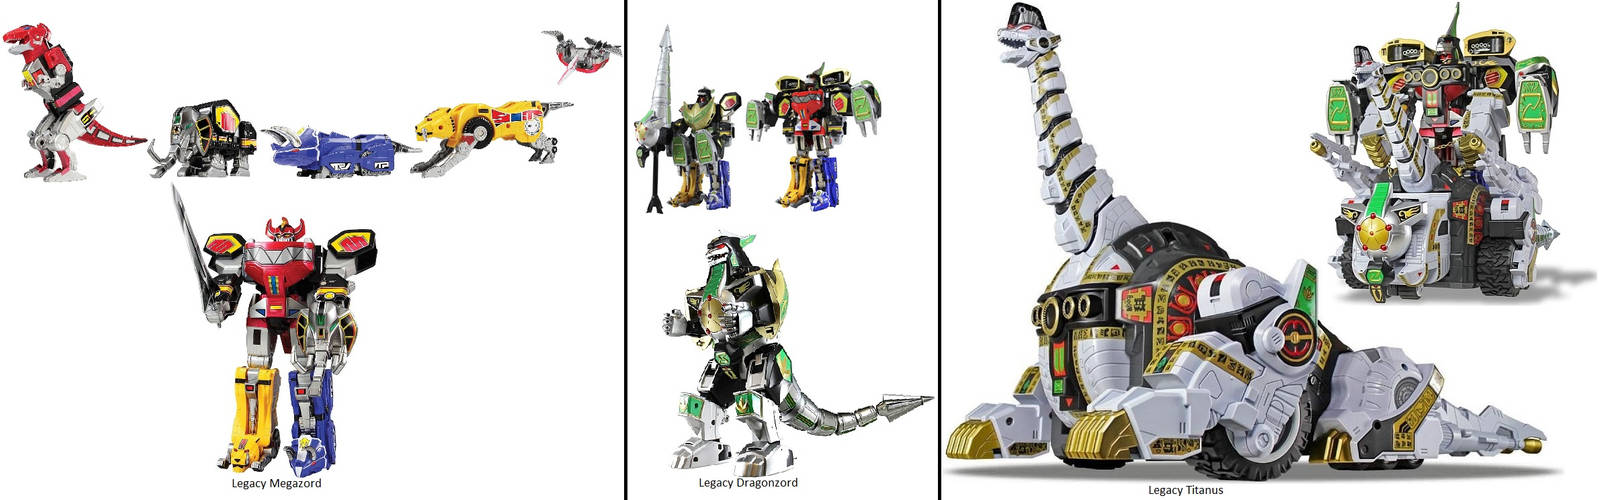 Mighty Morphin Power Rangers Legacy Collection